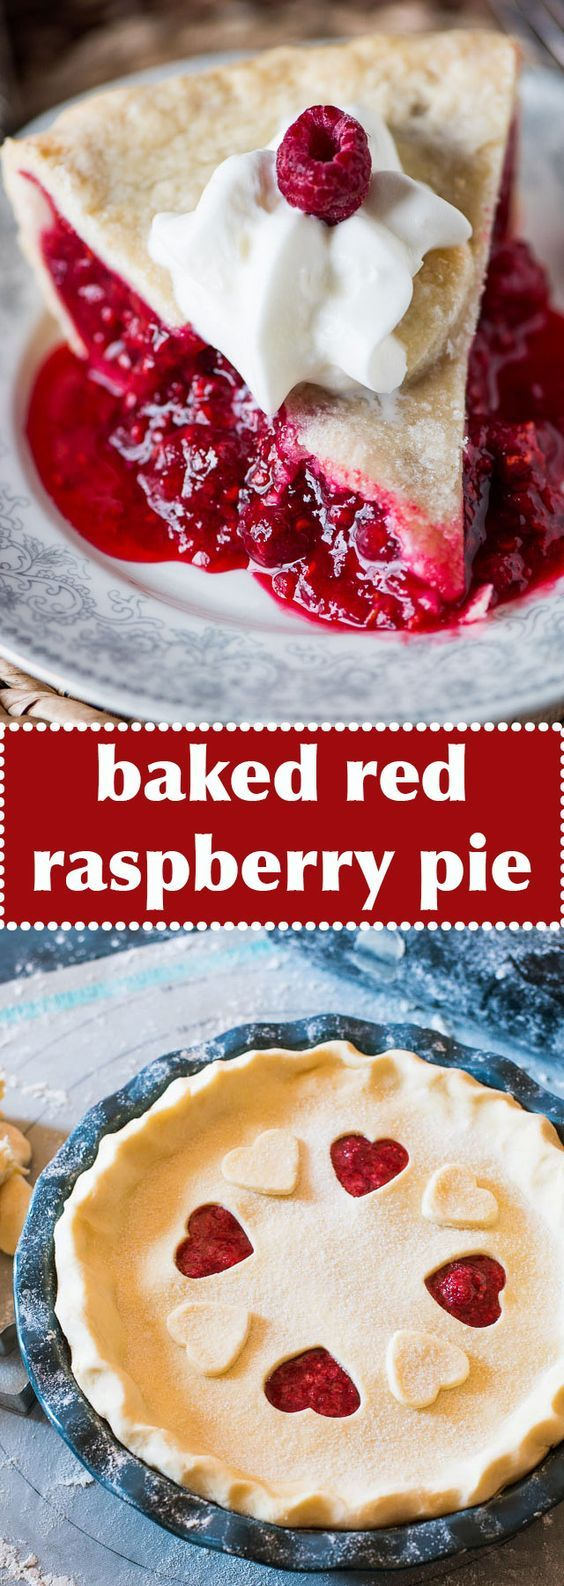 Baked Raspberry Pie Recipes